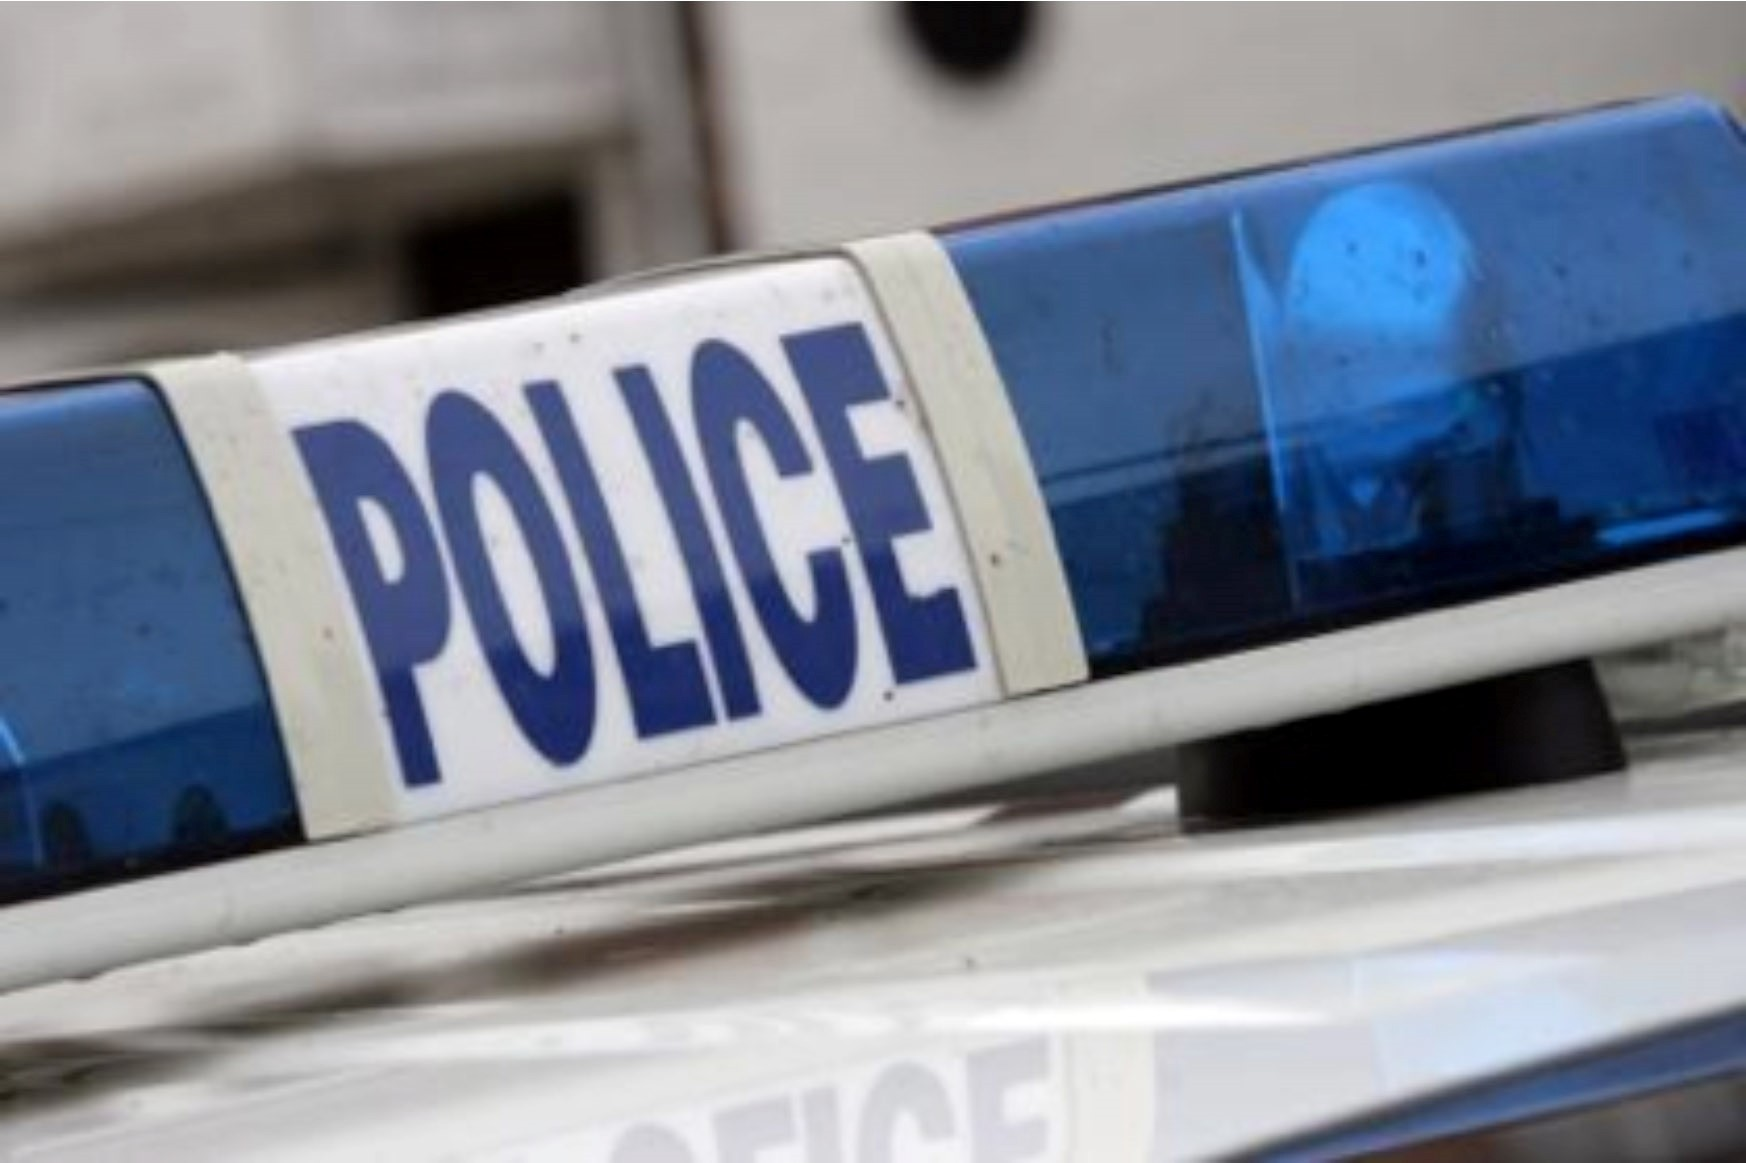 Dyfed-Powys Police are investigating an assault which took place in Waterloo Road, Penygroes after a man disturbed two men trying to break into his garage.